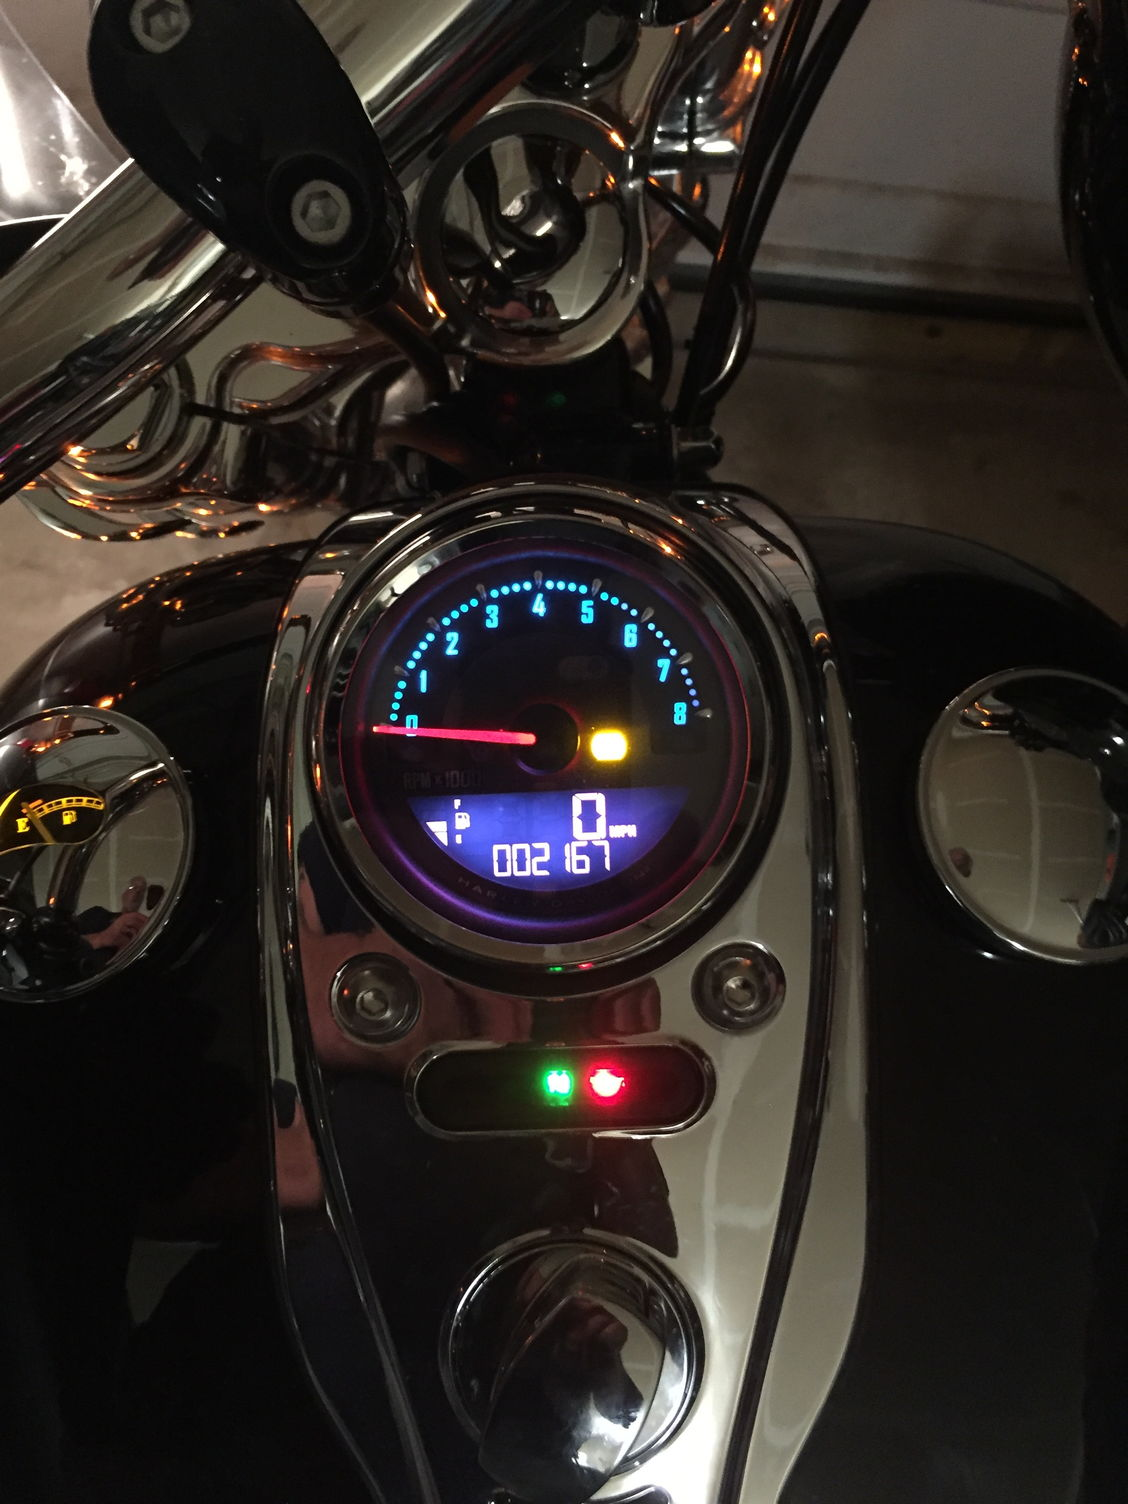 What Are Top 5 Mods For New Street Bob Page 2 Harley